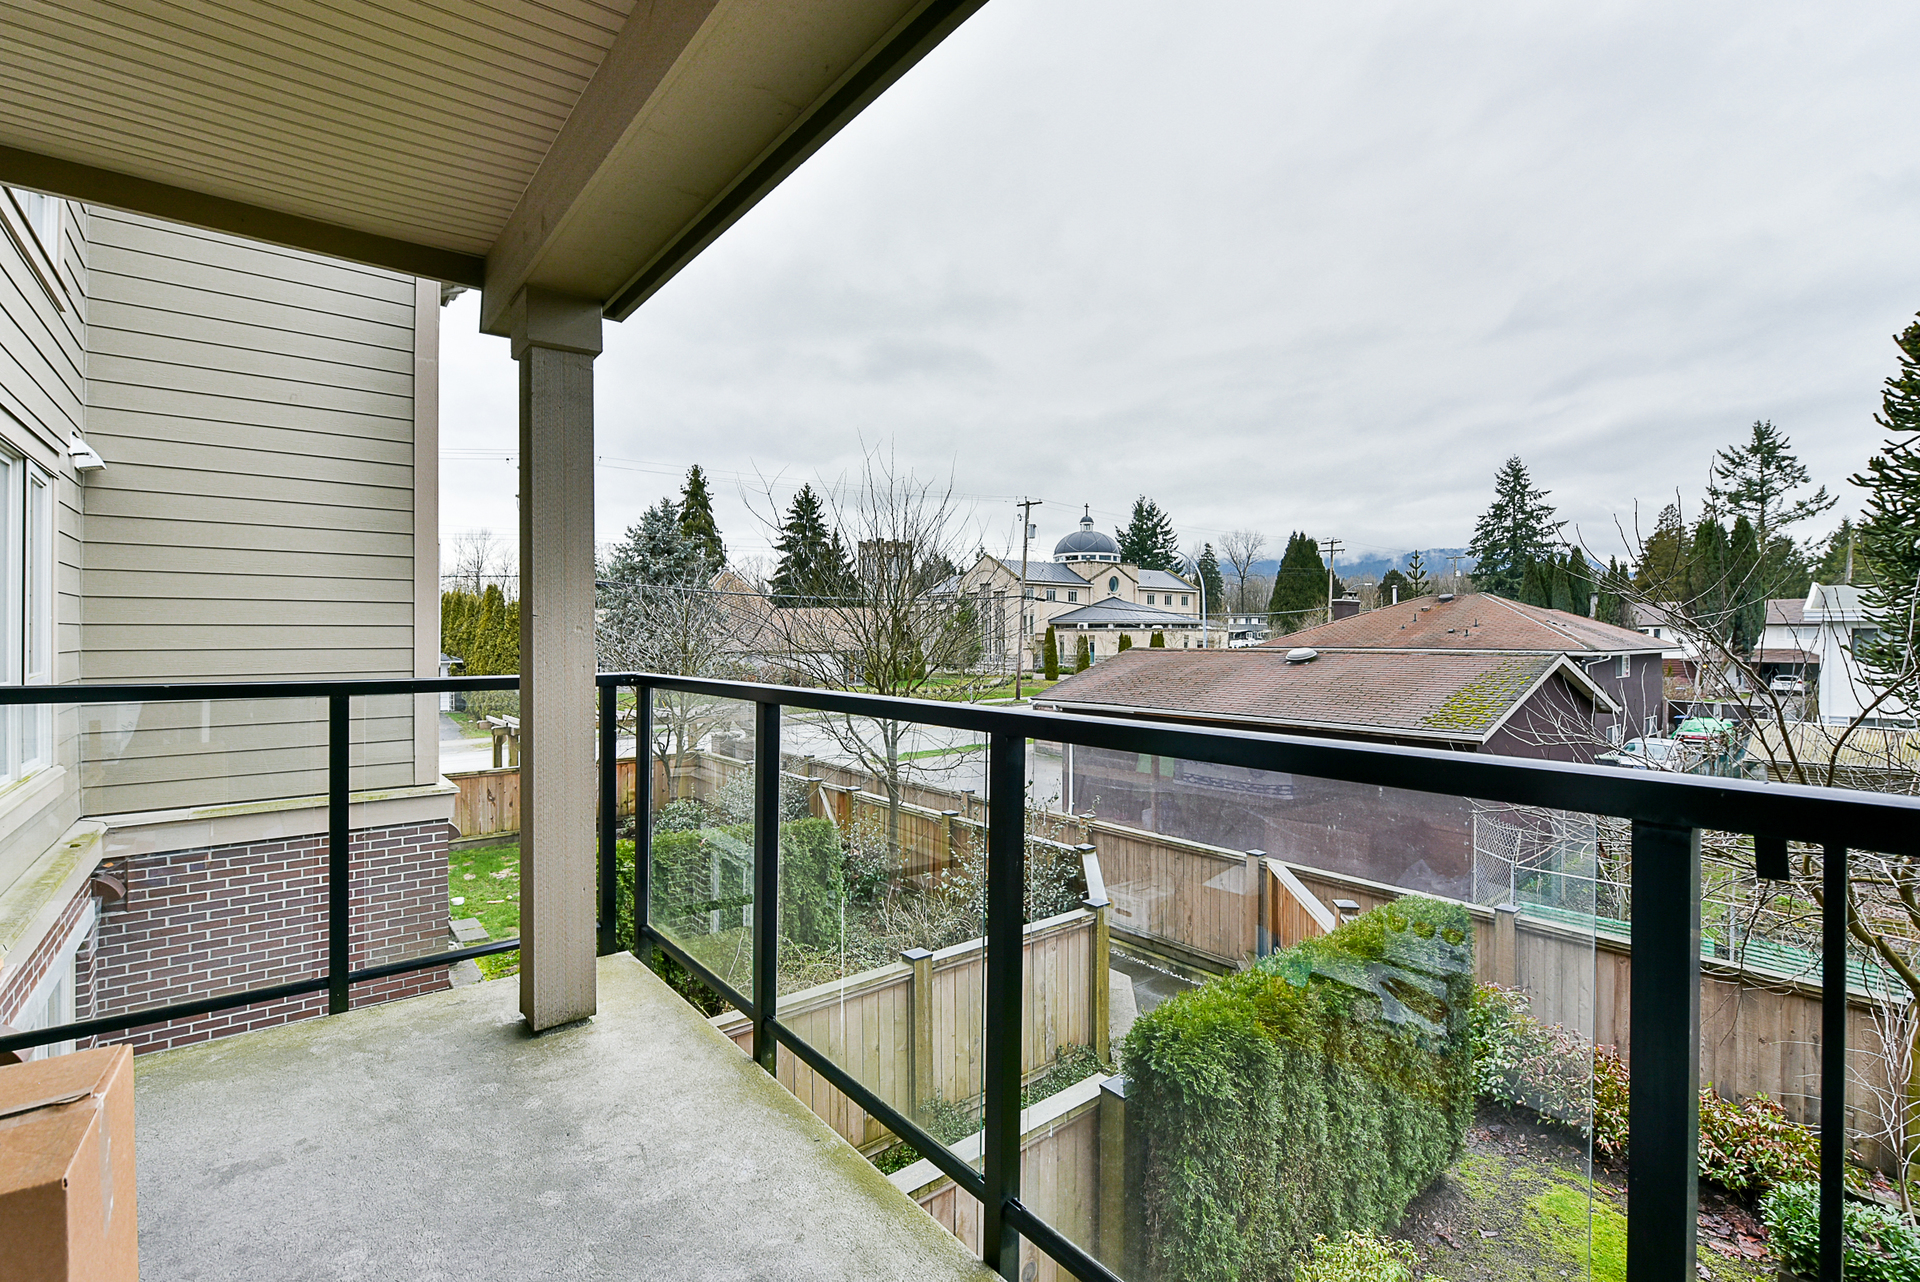 unit-209-2175-fraser-avenue-port-coquitlam-23 at #209 - 2175 Fraser Avenue, Glenwood PQ, Port Coquitlam